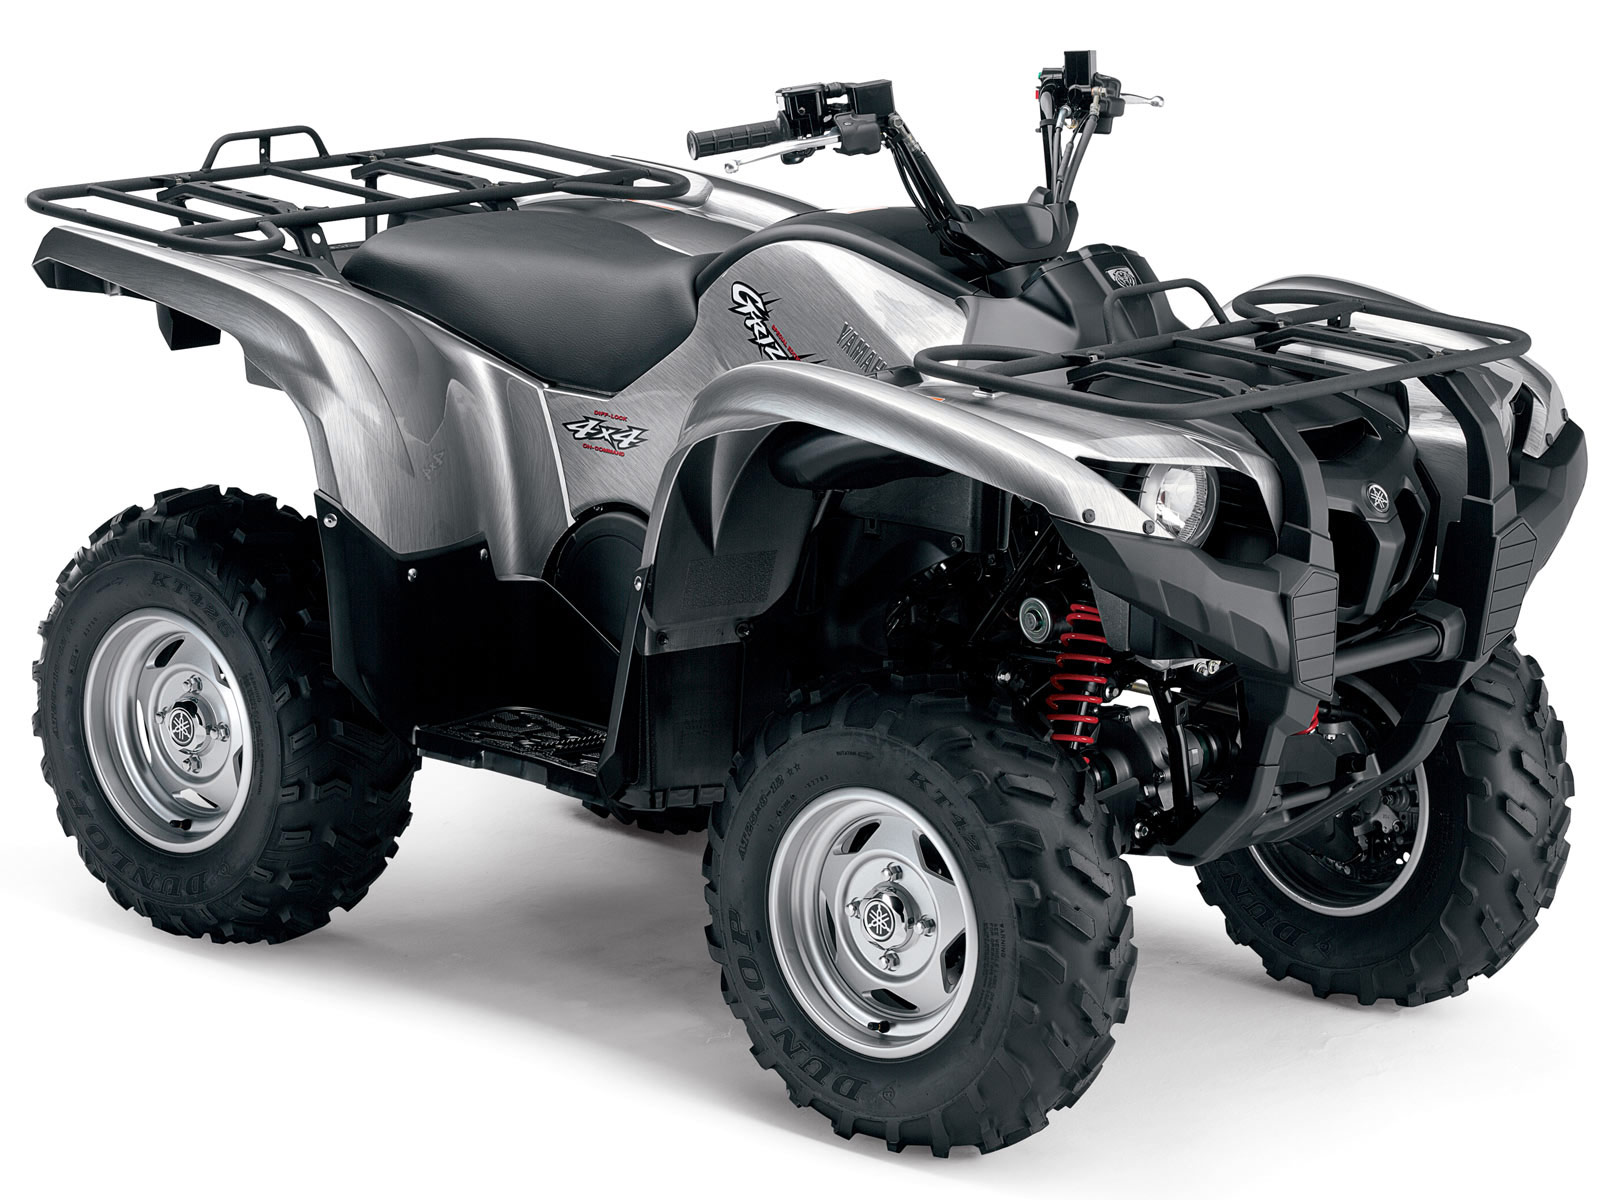 Dimensions Of Yamaha Grizzly